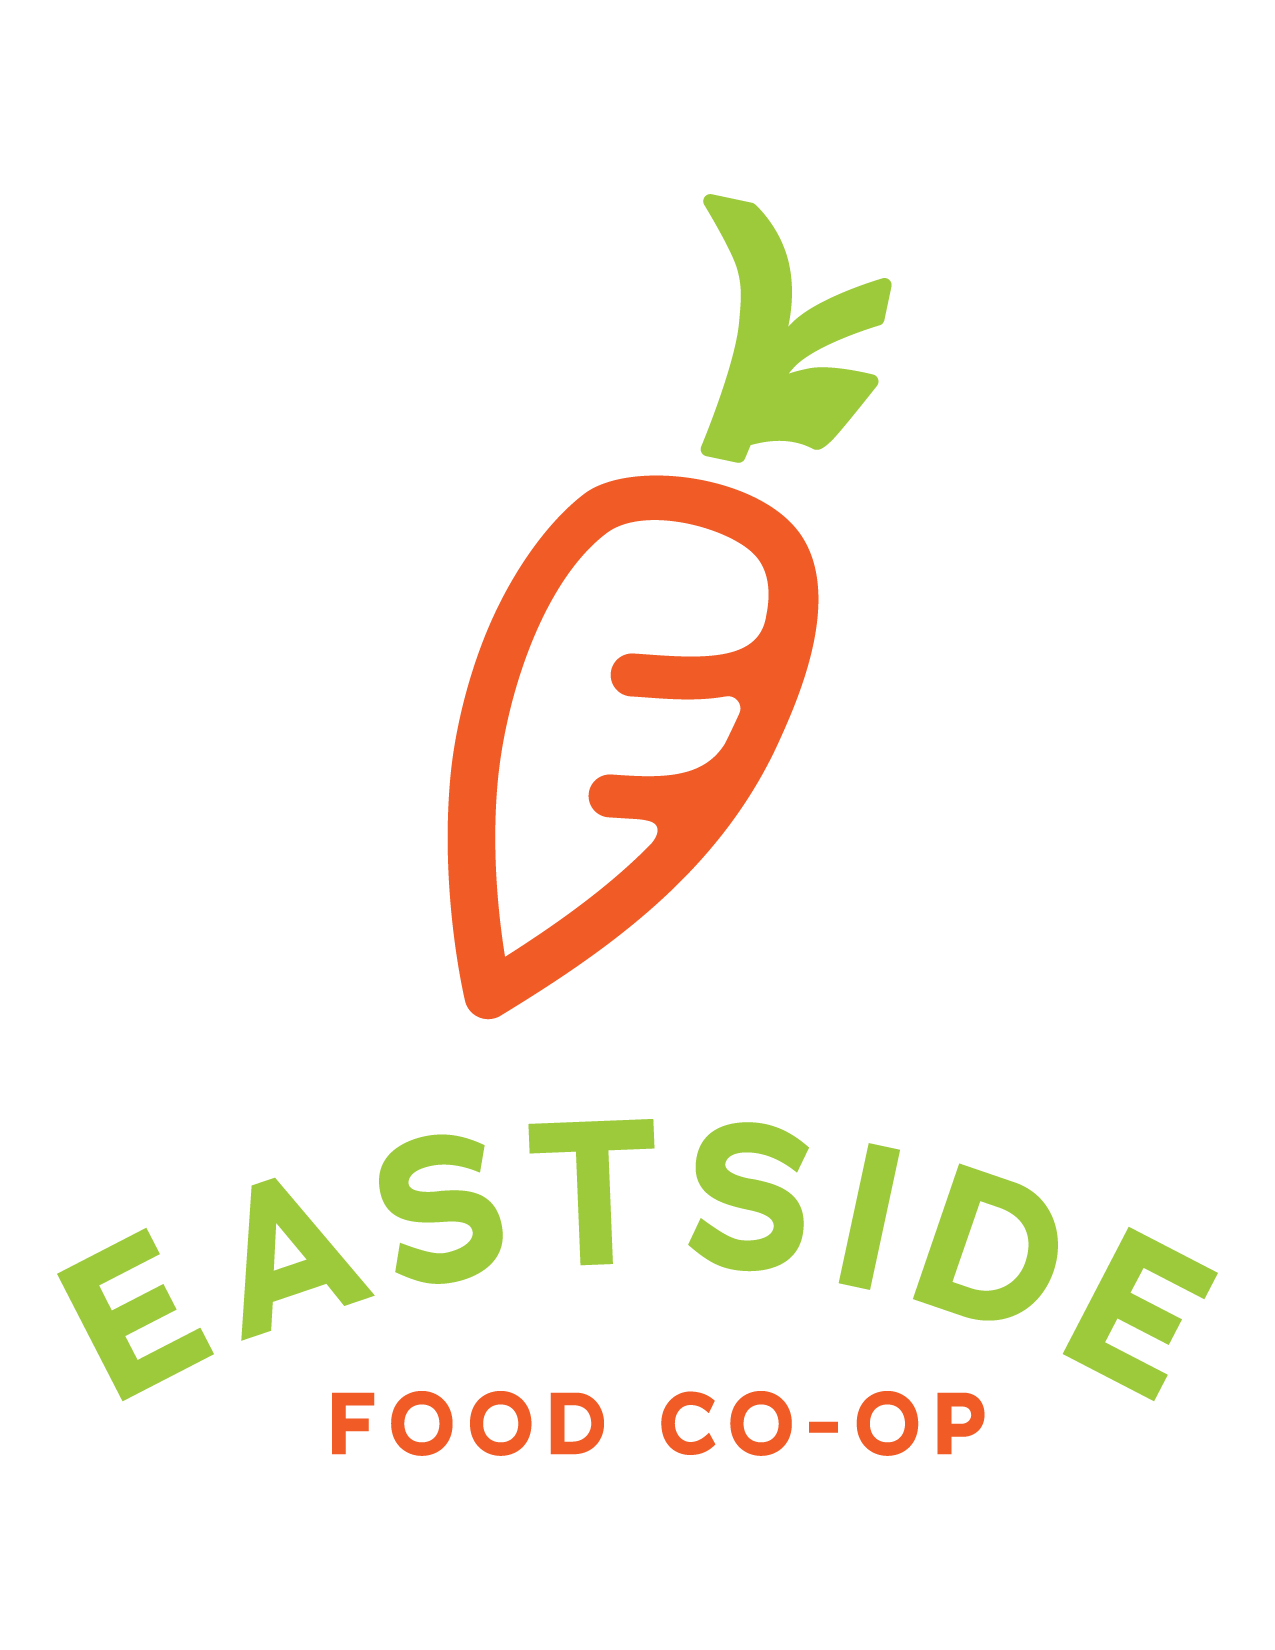 Eastside-Web.png